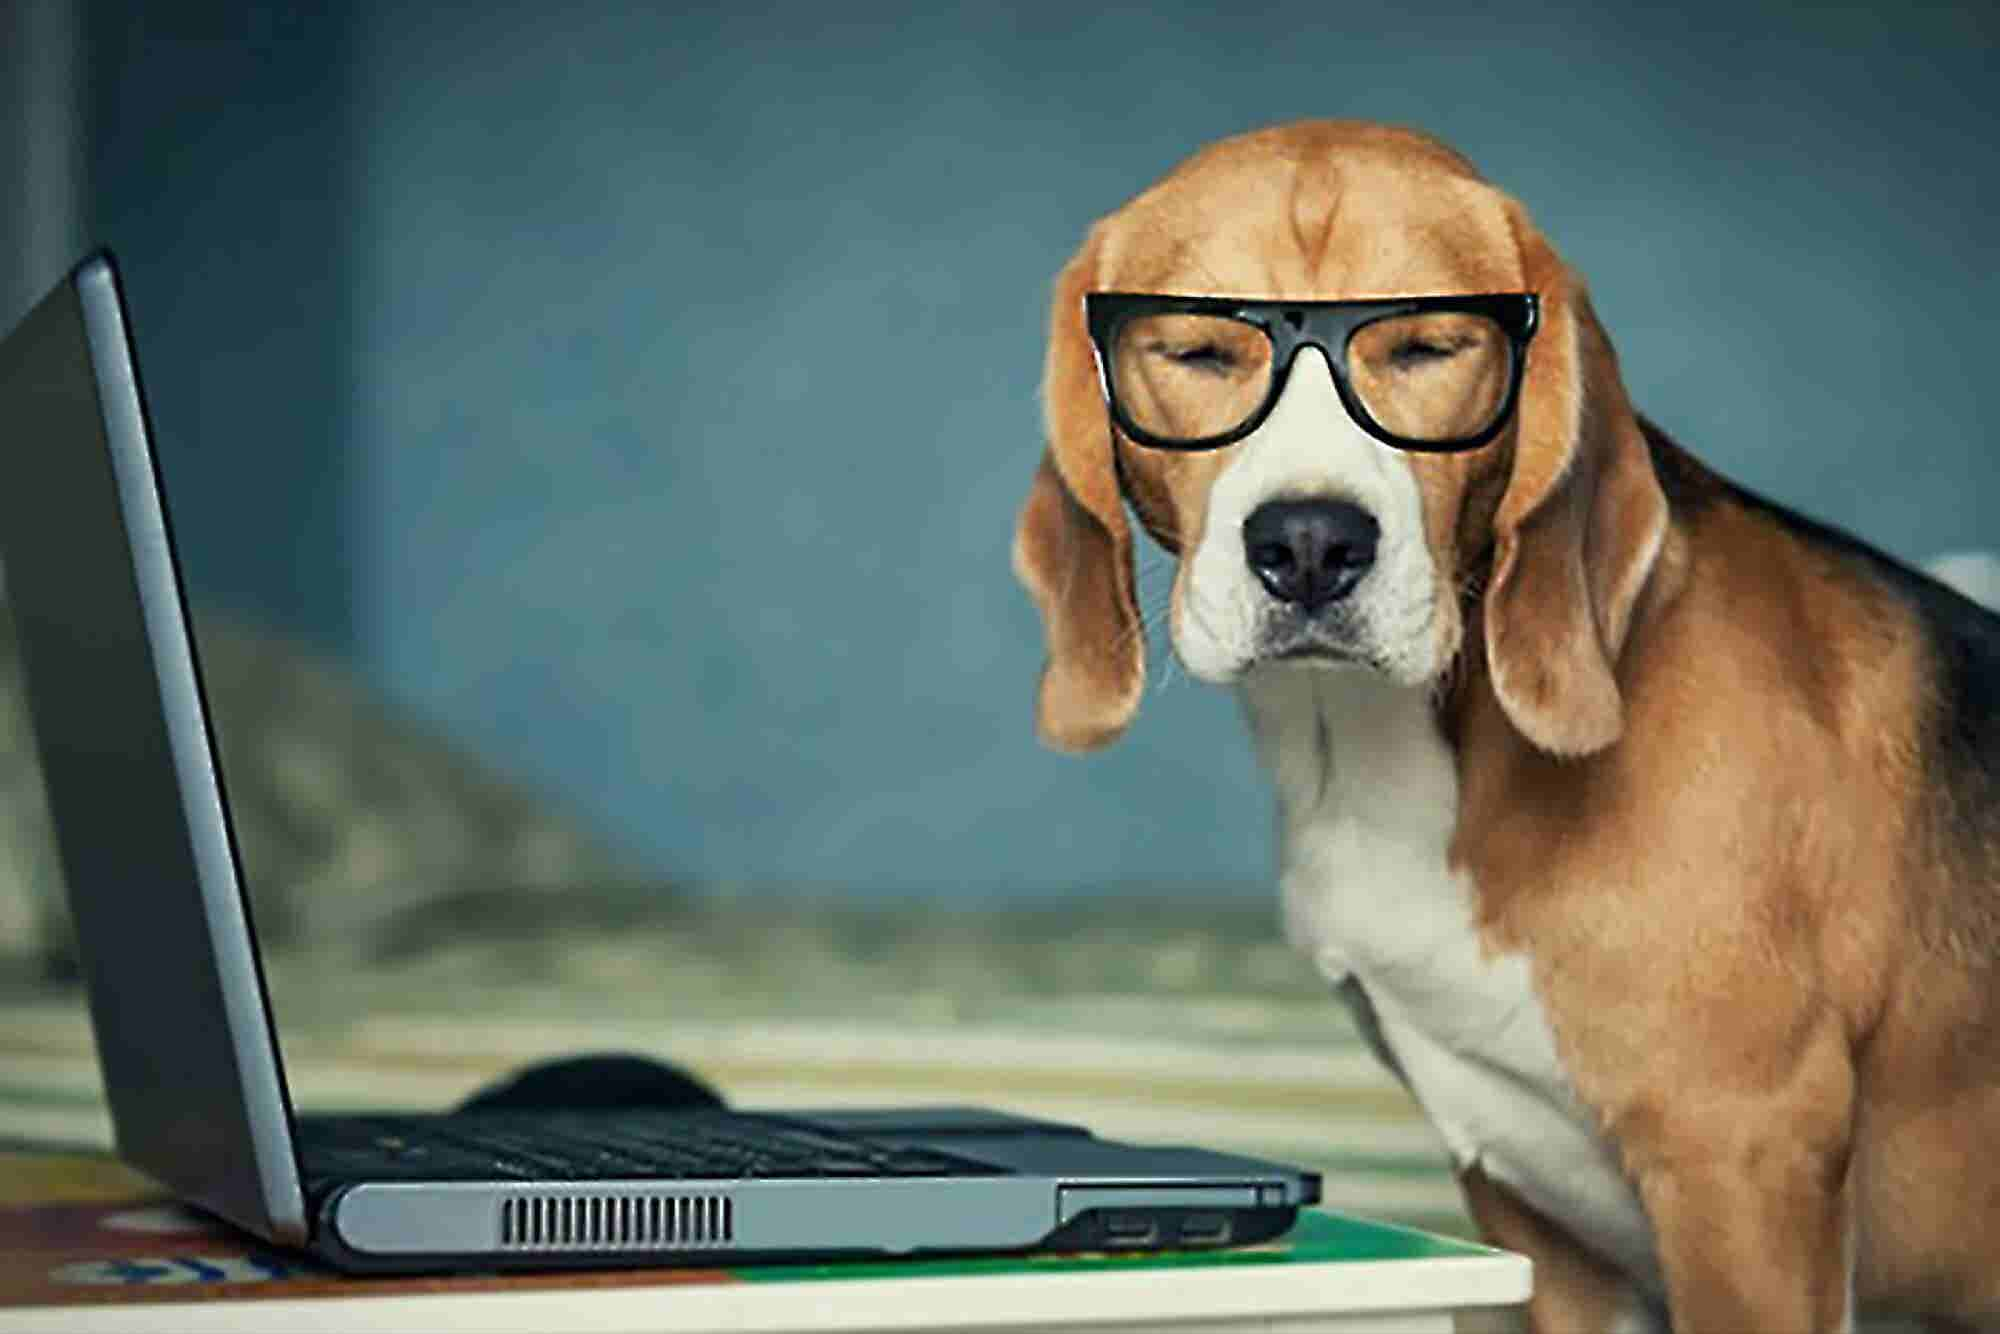 For a Productive Workplace Let Your Office Go to the Dogs